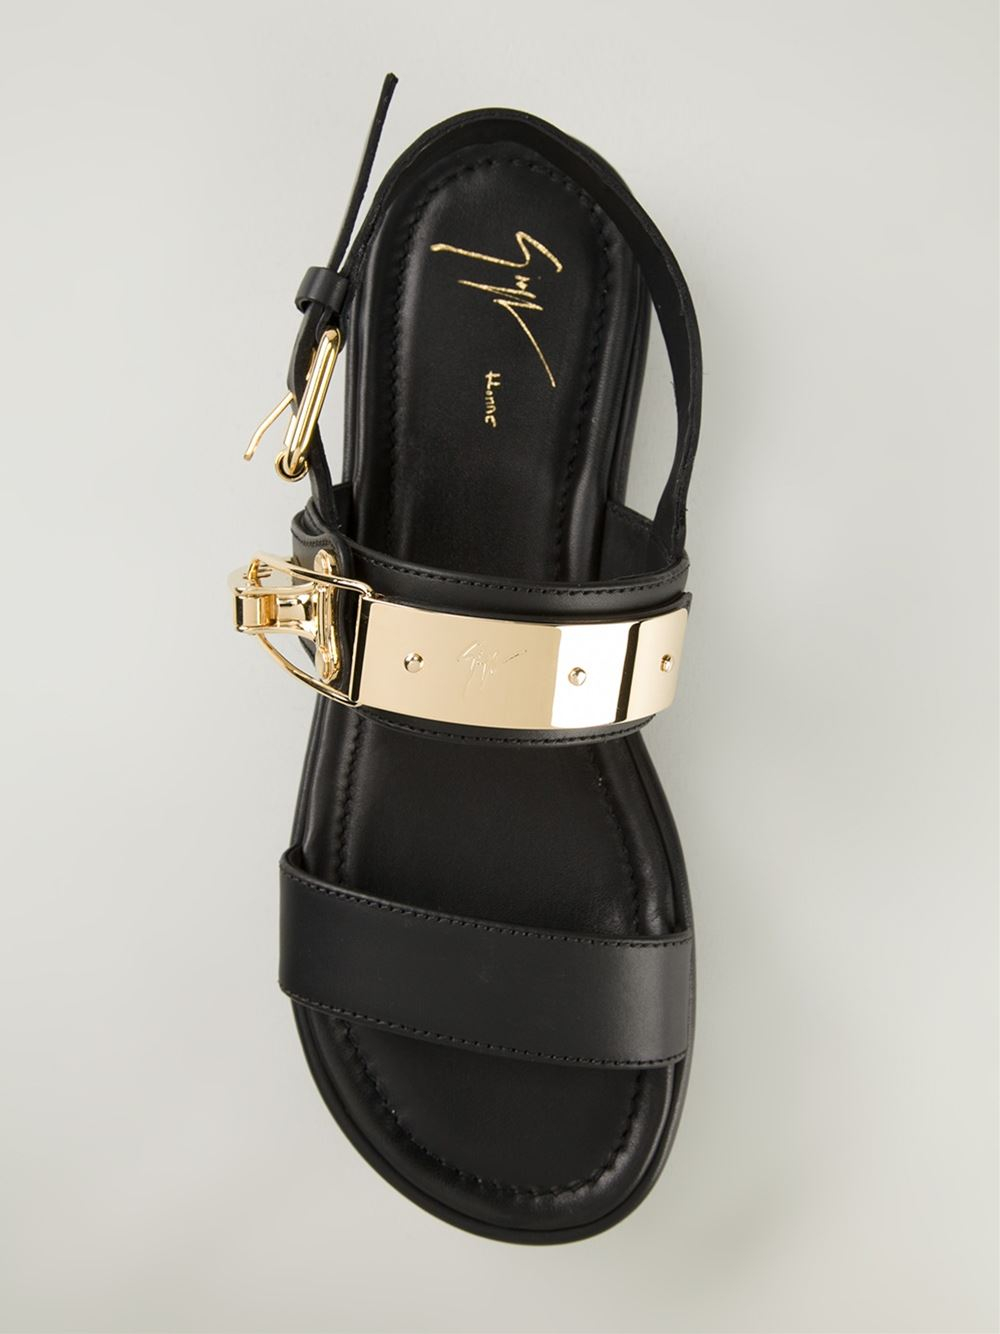 c870871bb2a503 Lyst - Giuseppe Zanotti Clasp Fastening Sandals in Black for Men